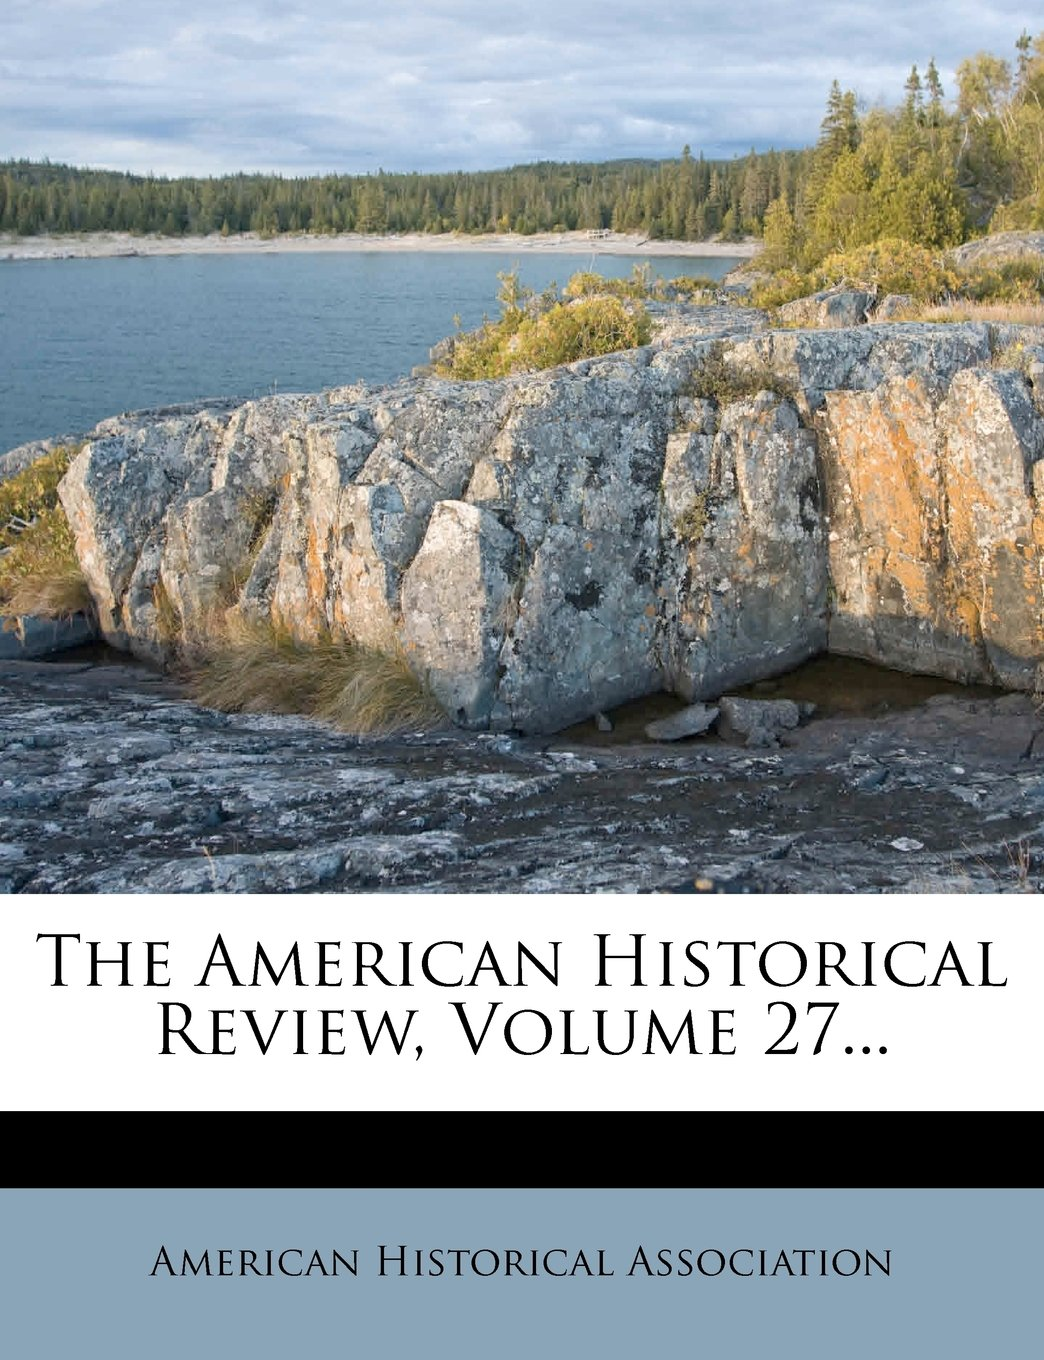 The American Historical Review, Volume 27... PDF